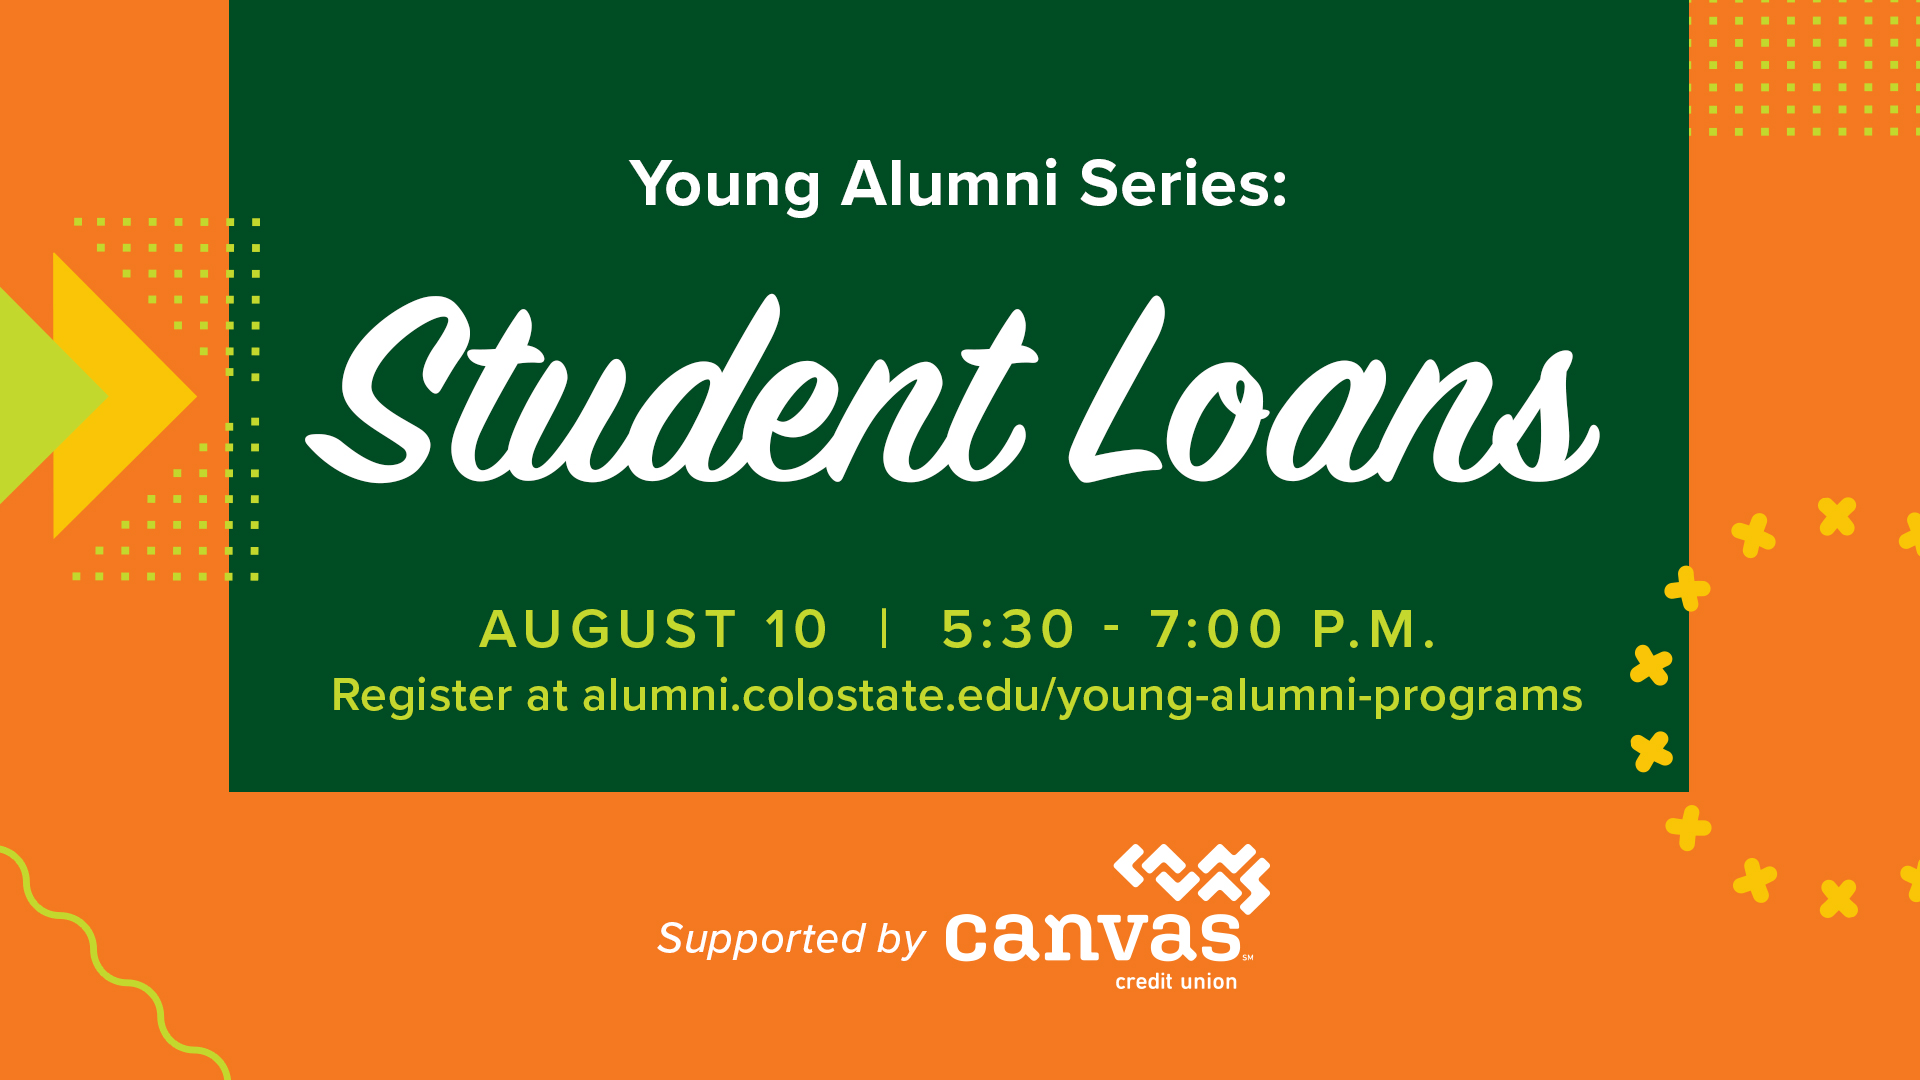 Image for Young Alumni Series: Student Loans webinar